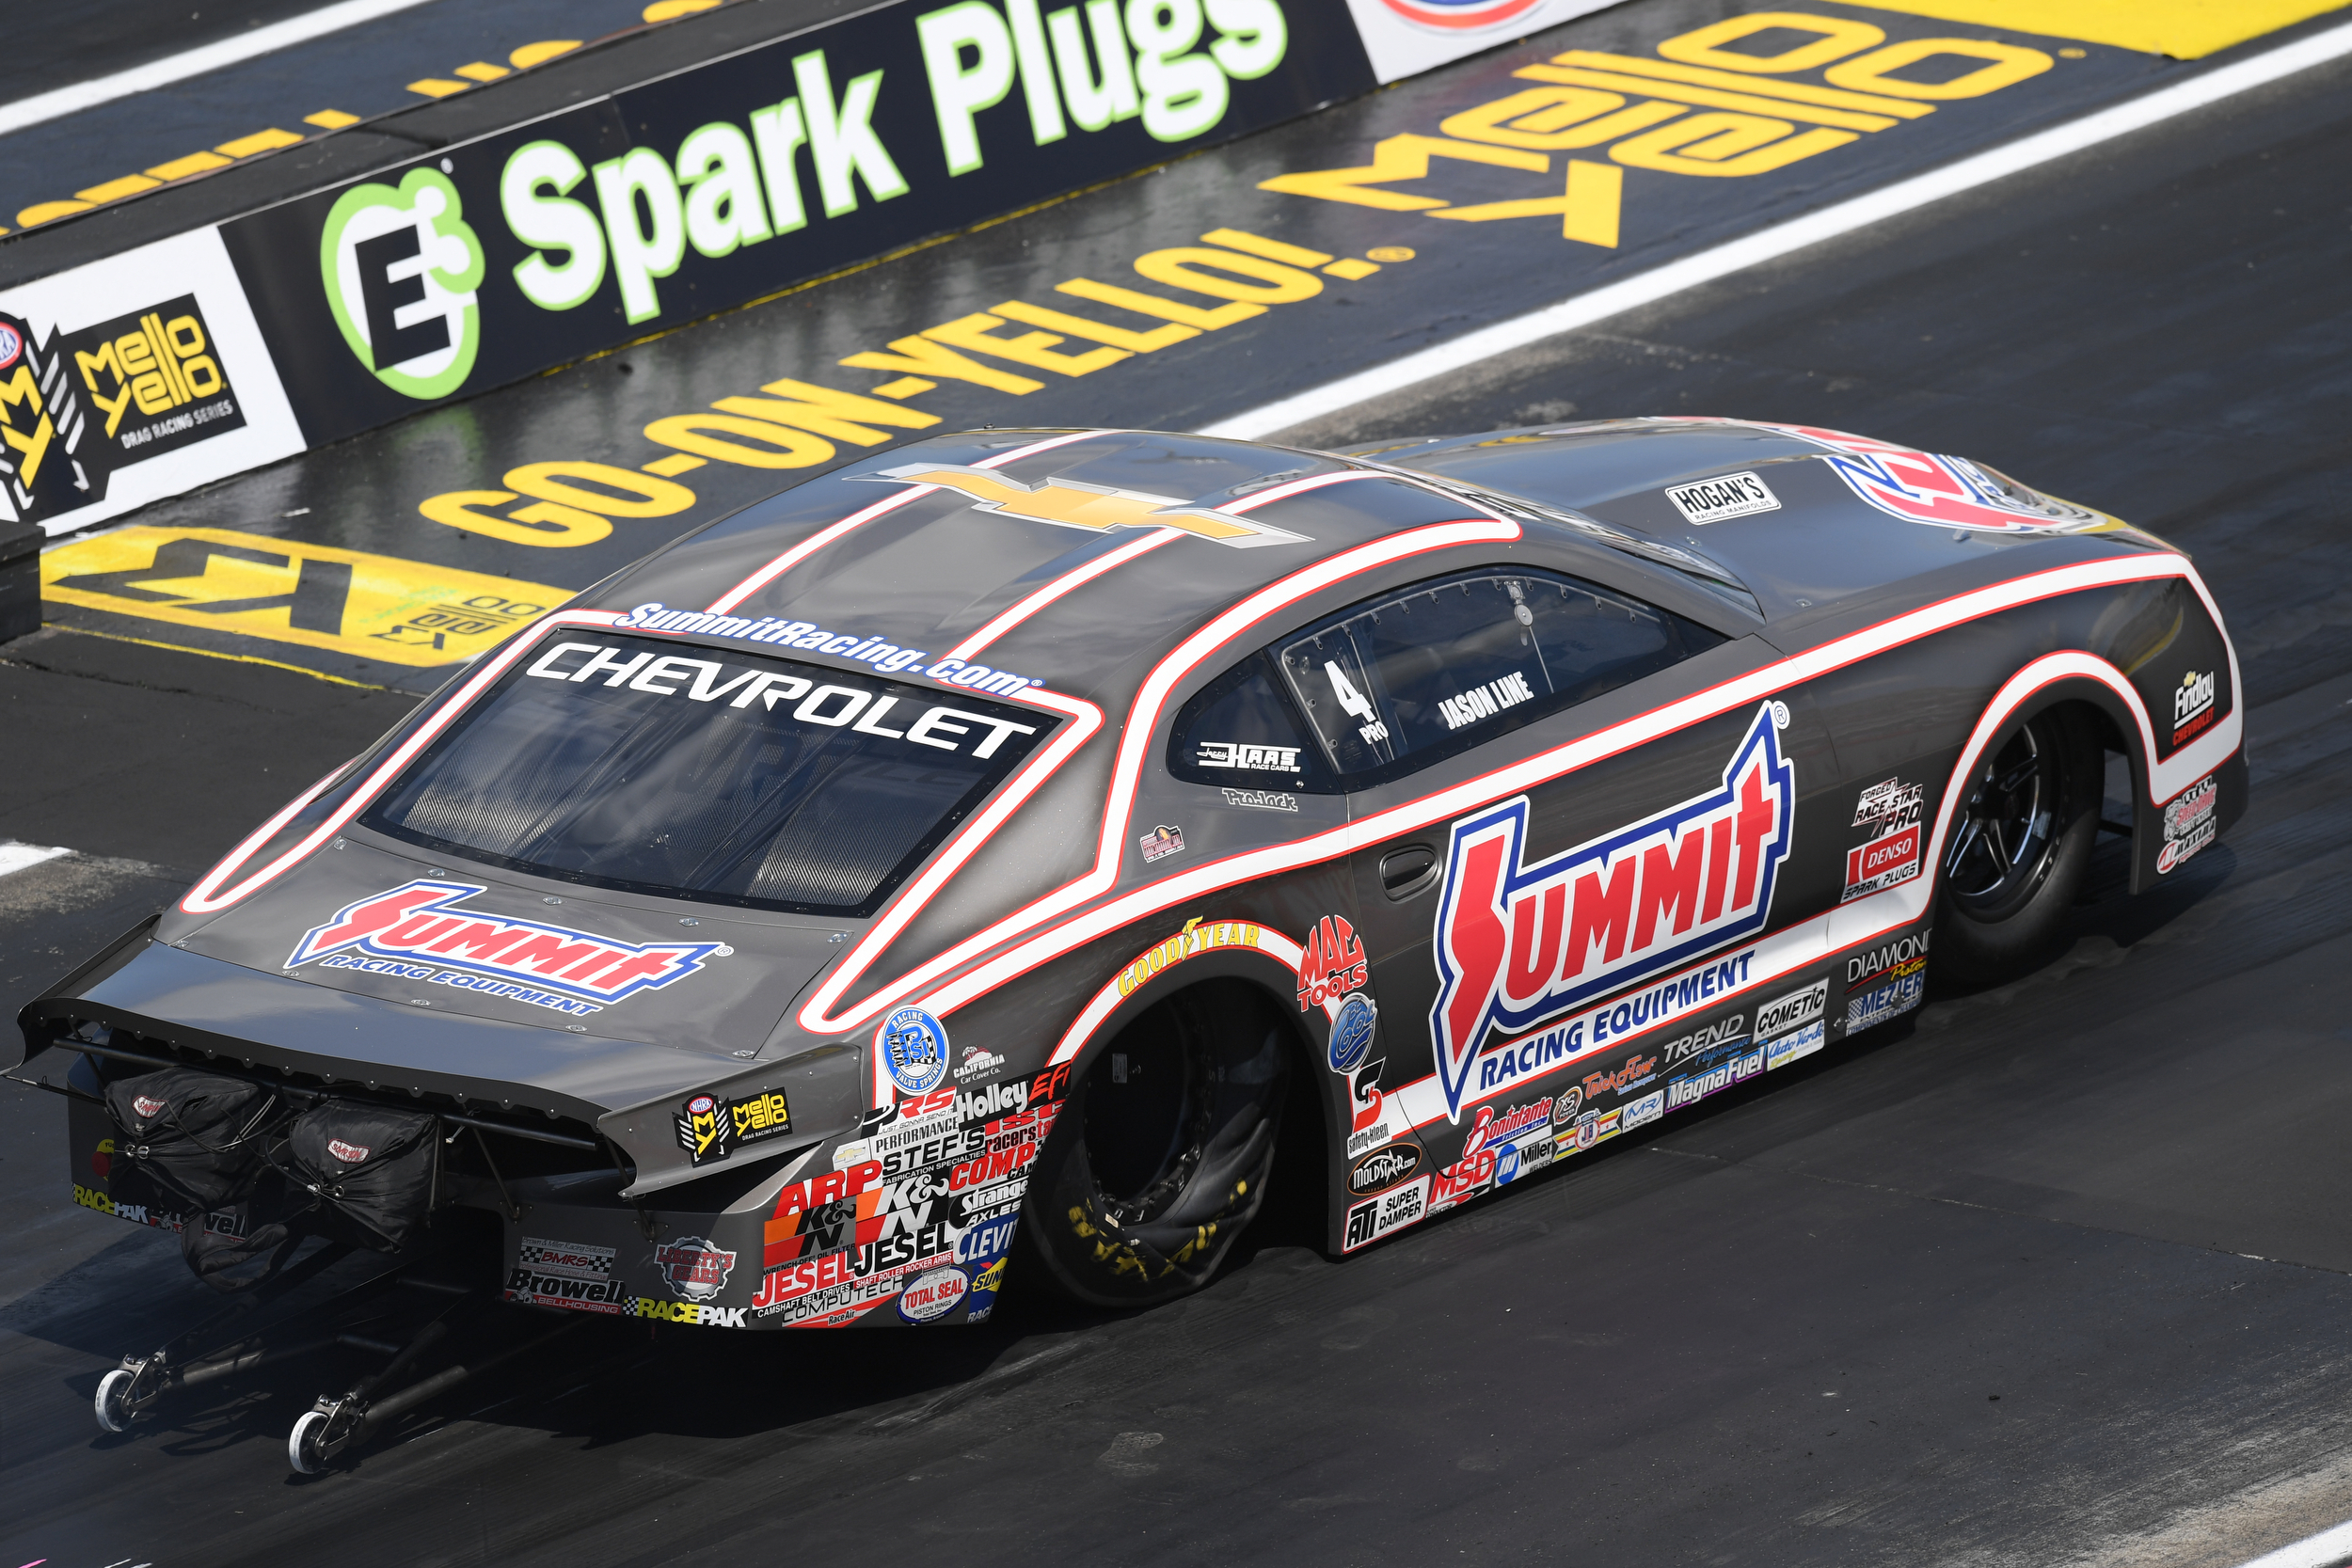 Summit Racing Equipment Pro Stock driver Jason Line is the No. 1 qualifier at the E3 Spark Plugs NHRA Nationals